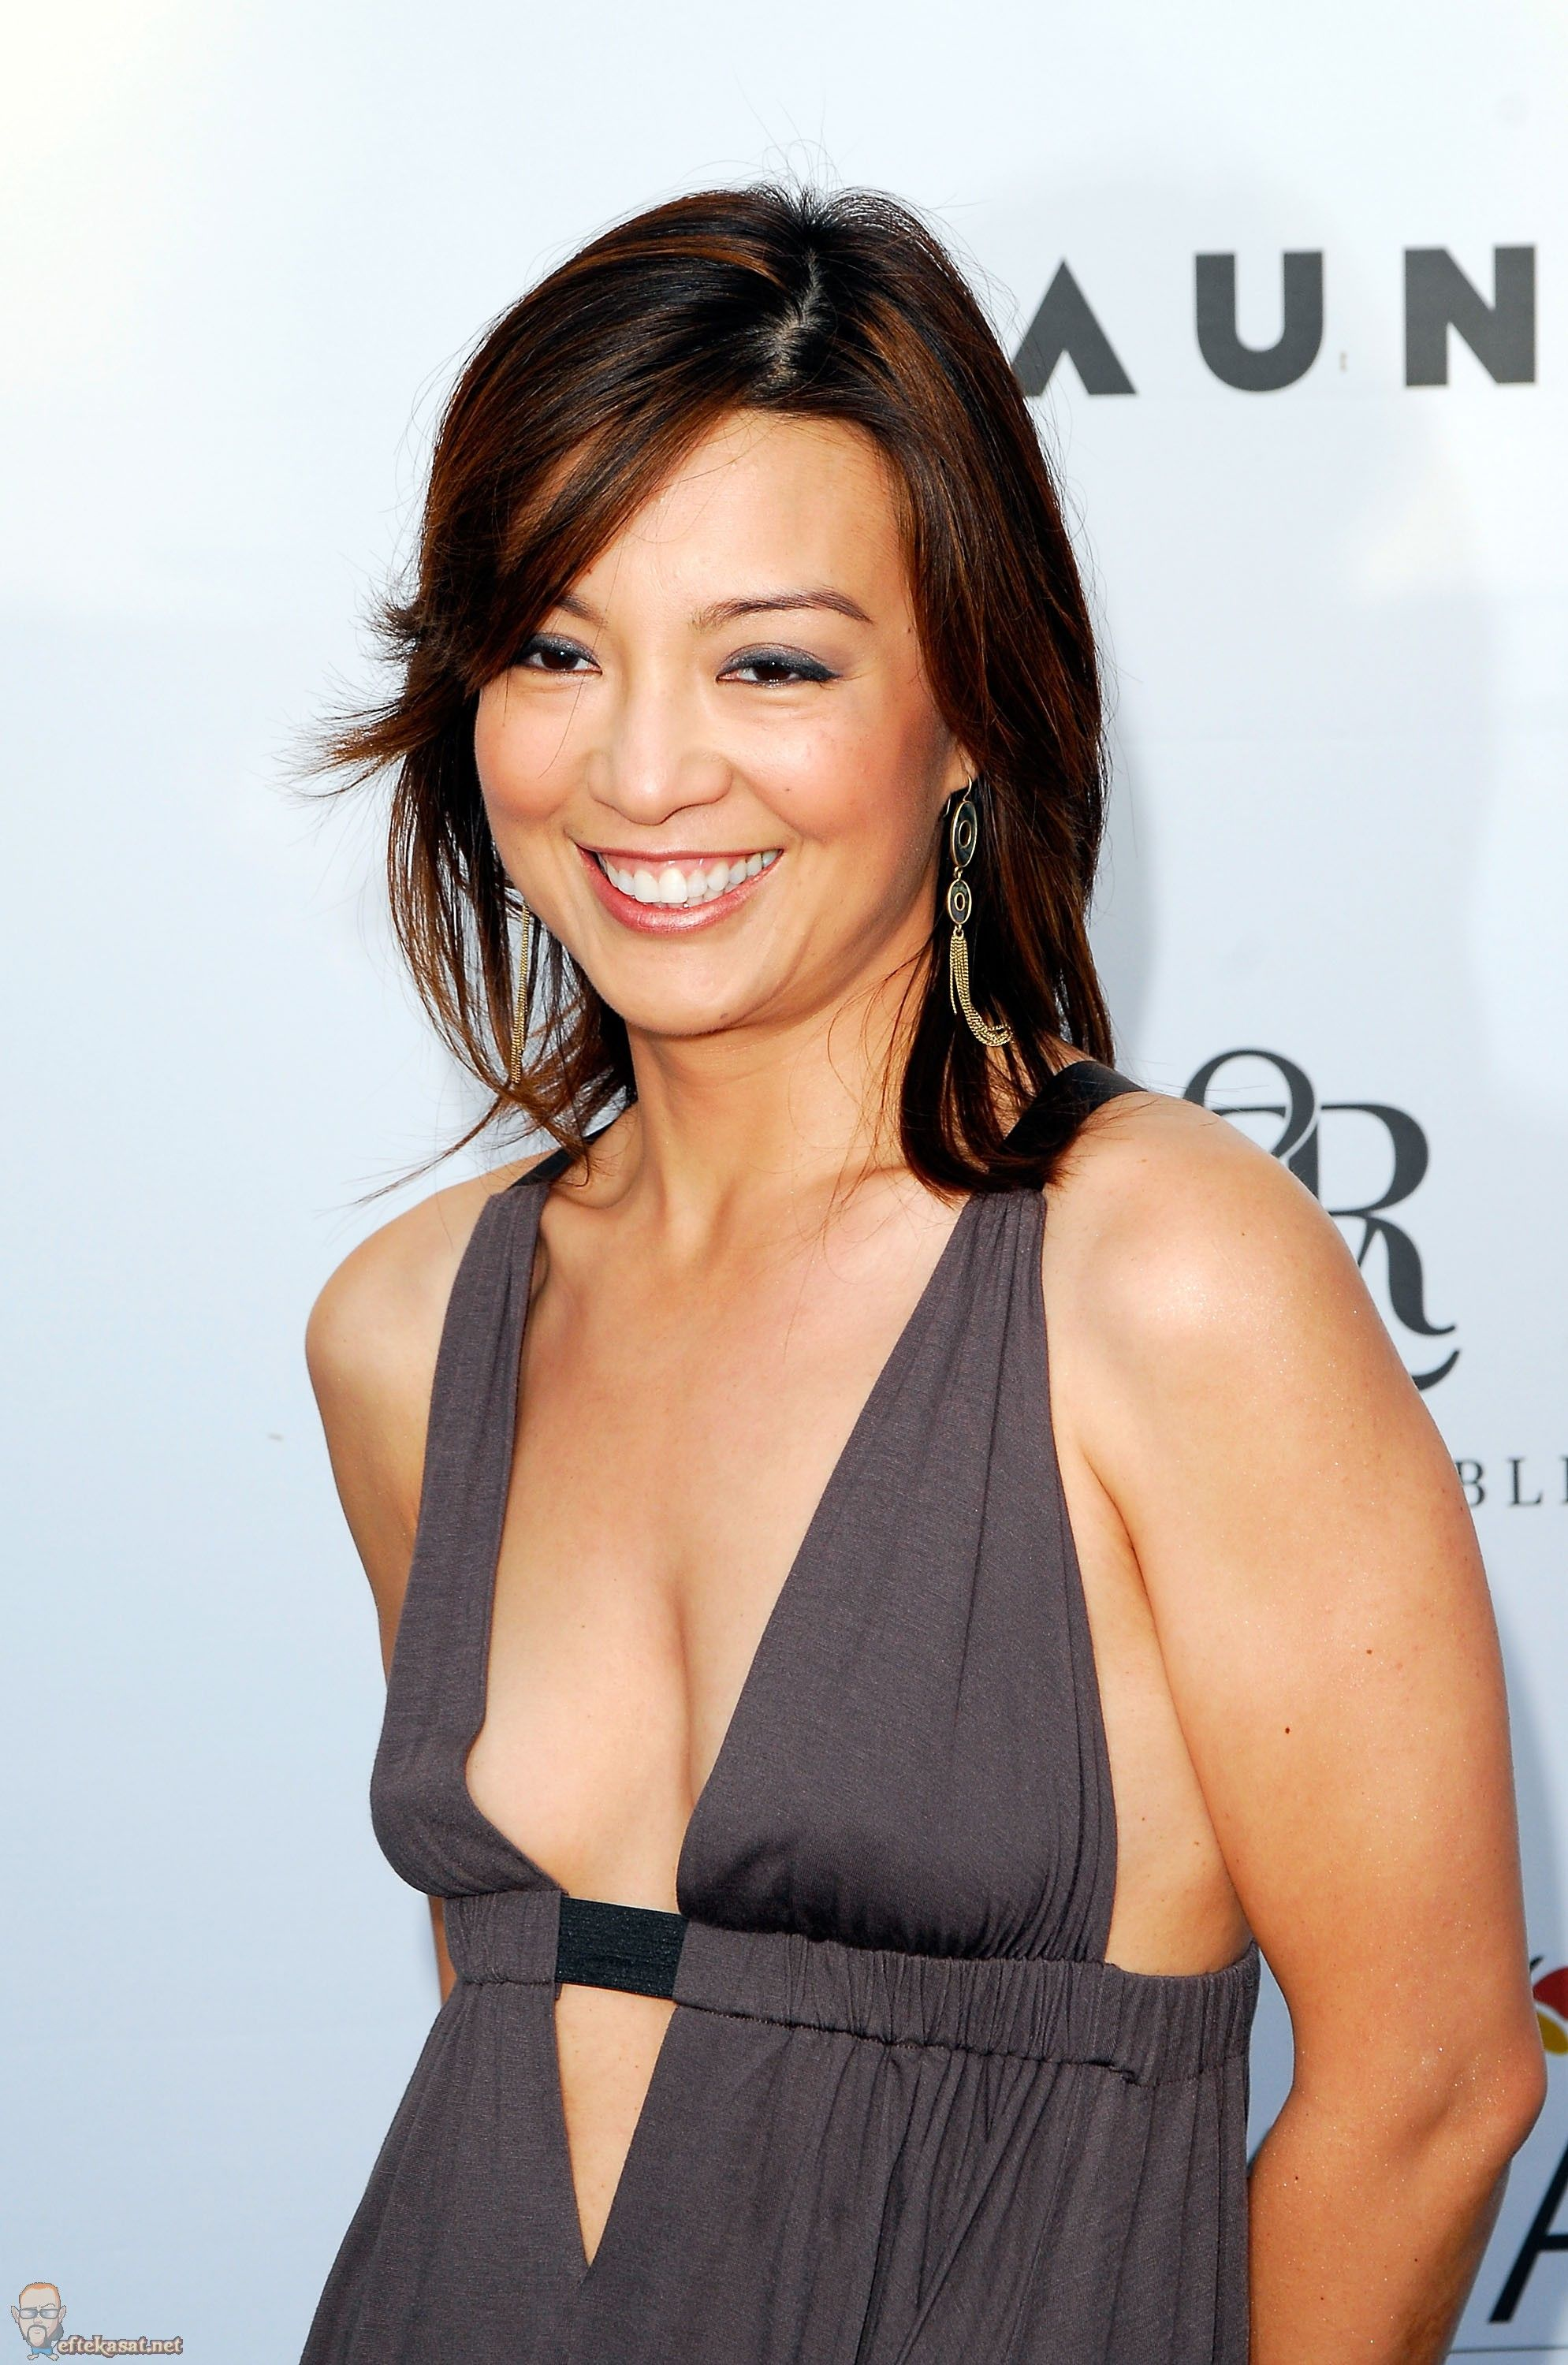 Celebrity Ming-Na Wen nude (65 photo), Ass, Paparazzi, Boobs, lingerie 2020